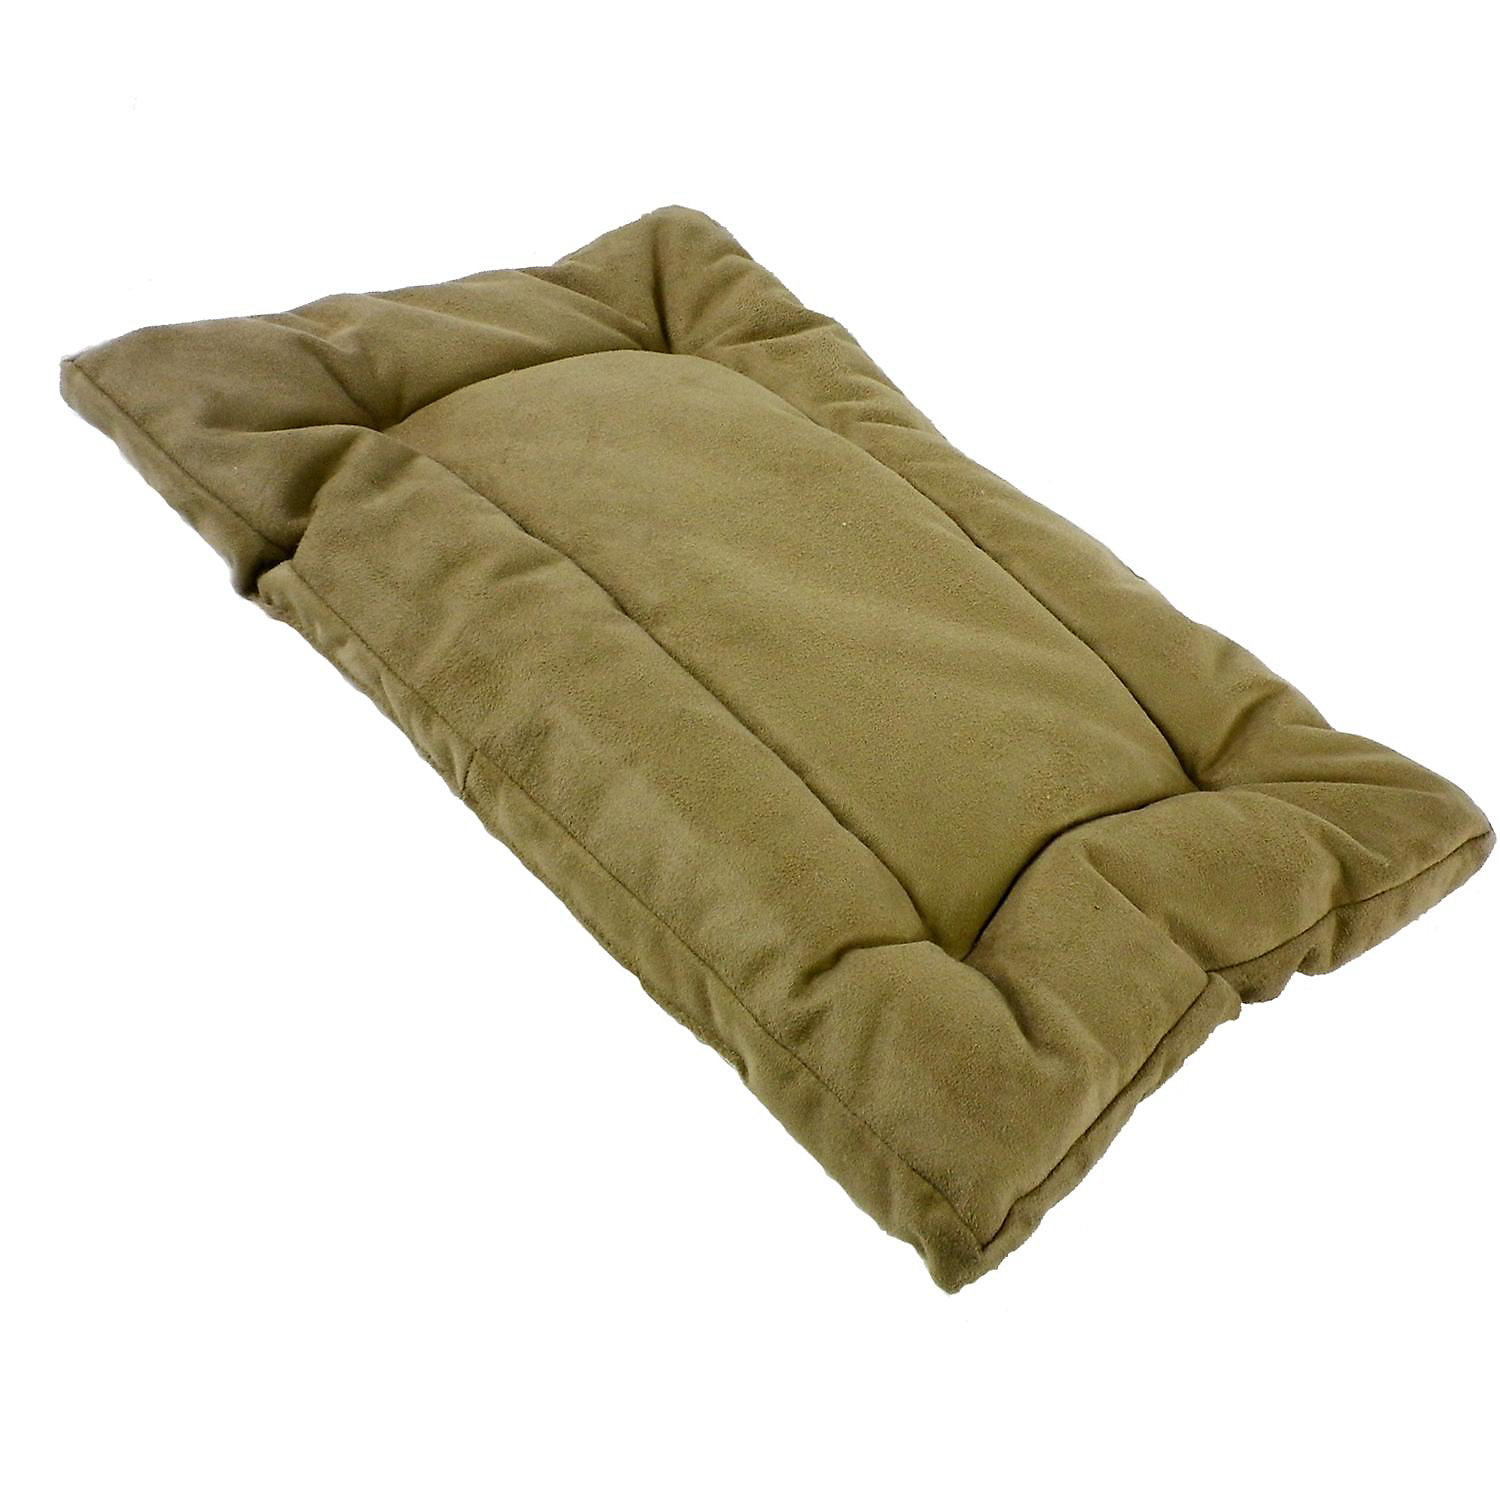 Snoozer Outlast Peat Dog Crate Pad, 15